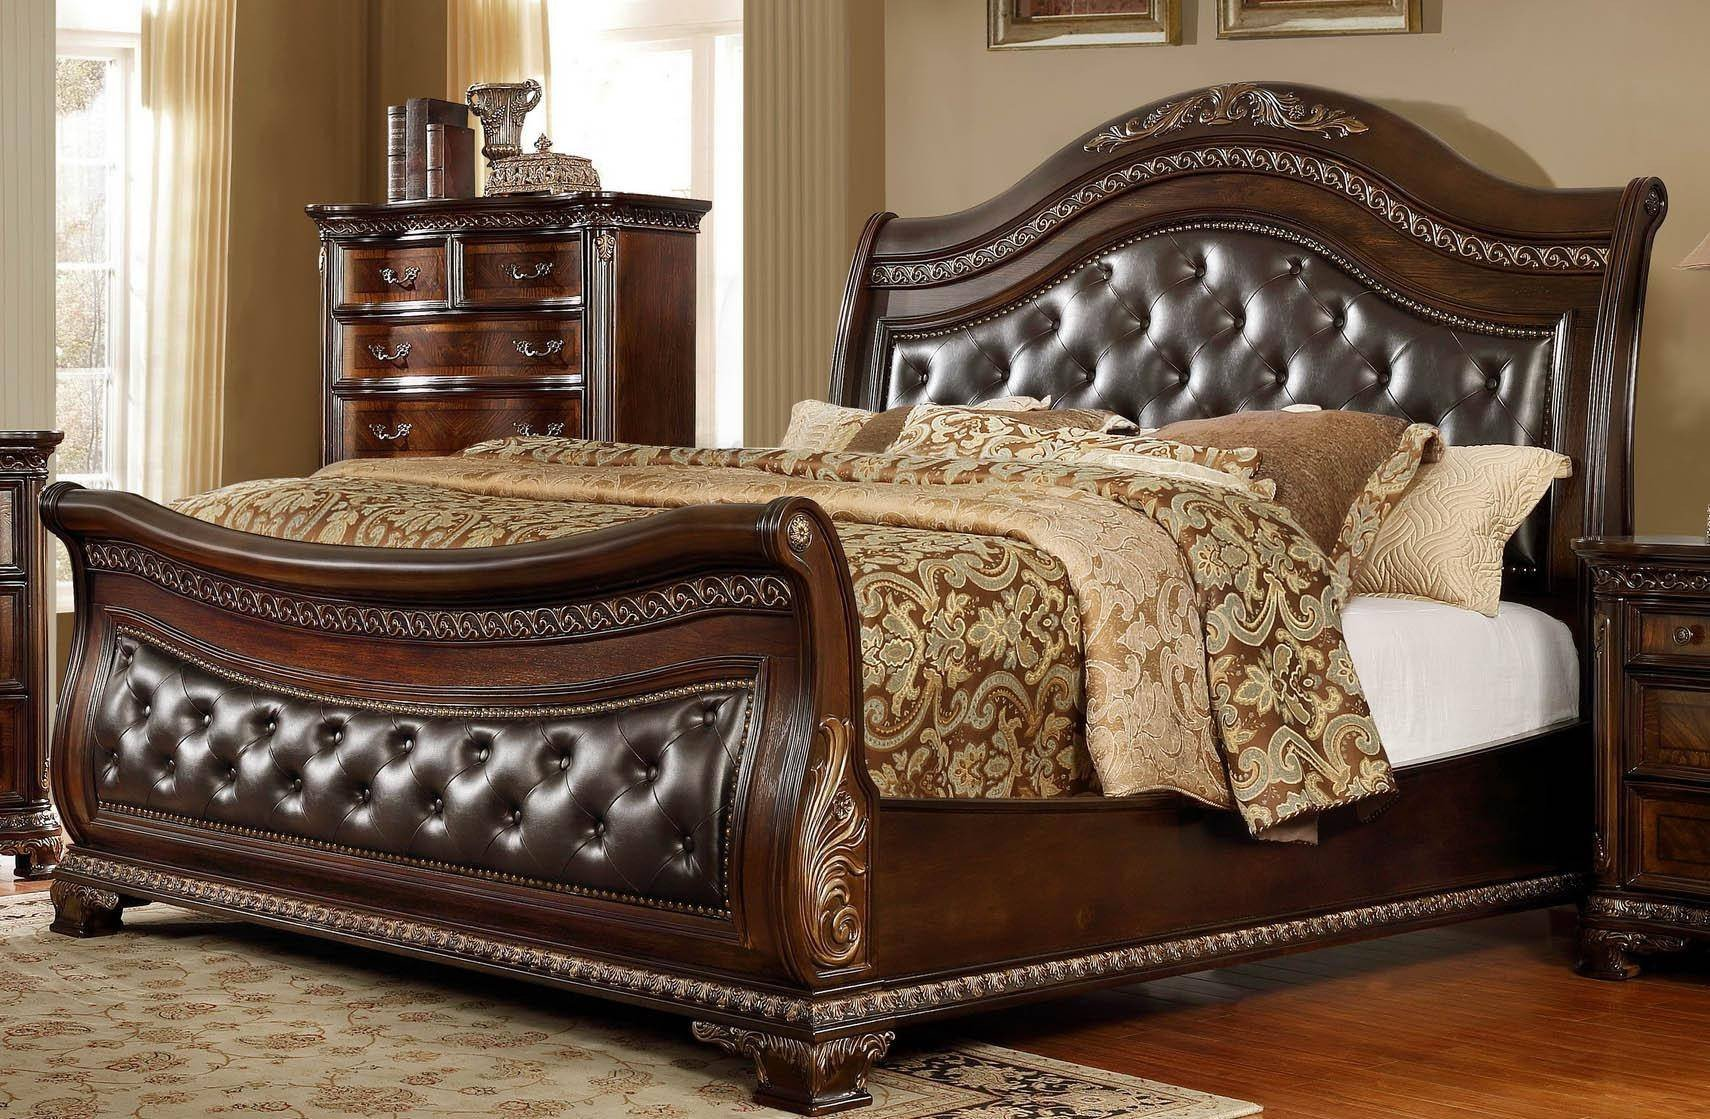 Bedroom Set Full Size Bed Lovely Mcferran B9588 King Sleigh Bed In Oak Veneers Dark Cherry Finish Leather